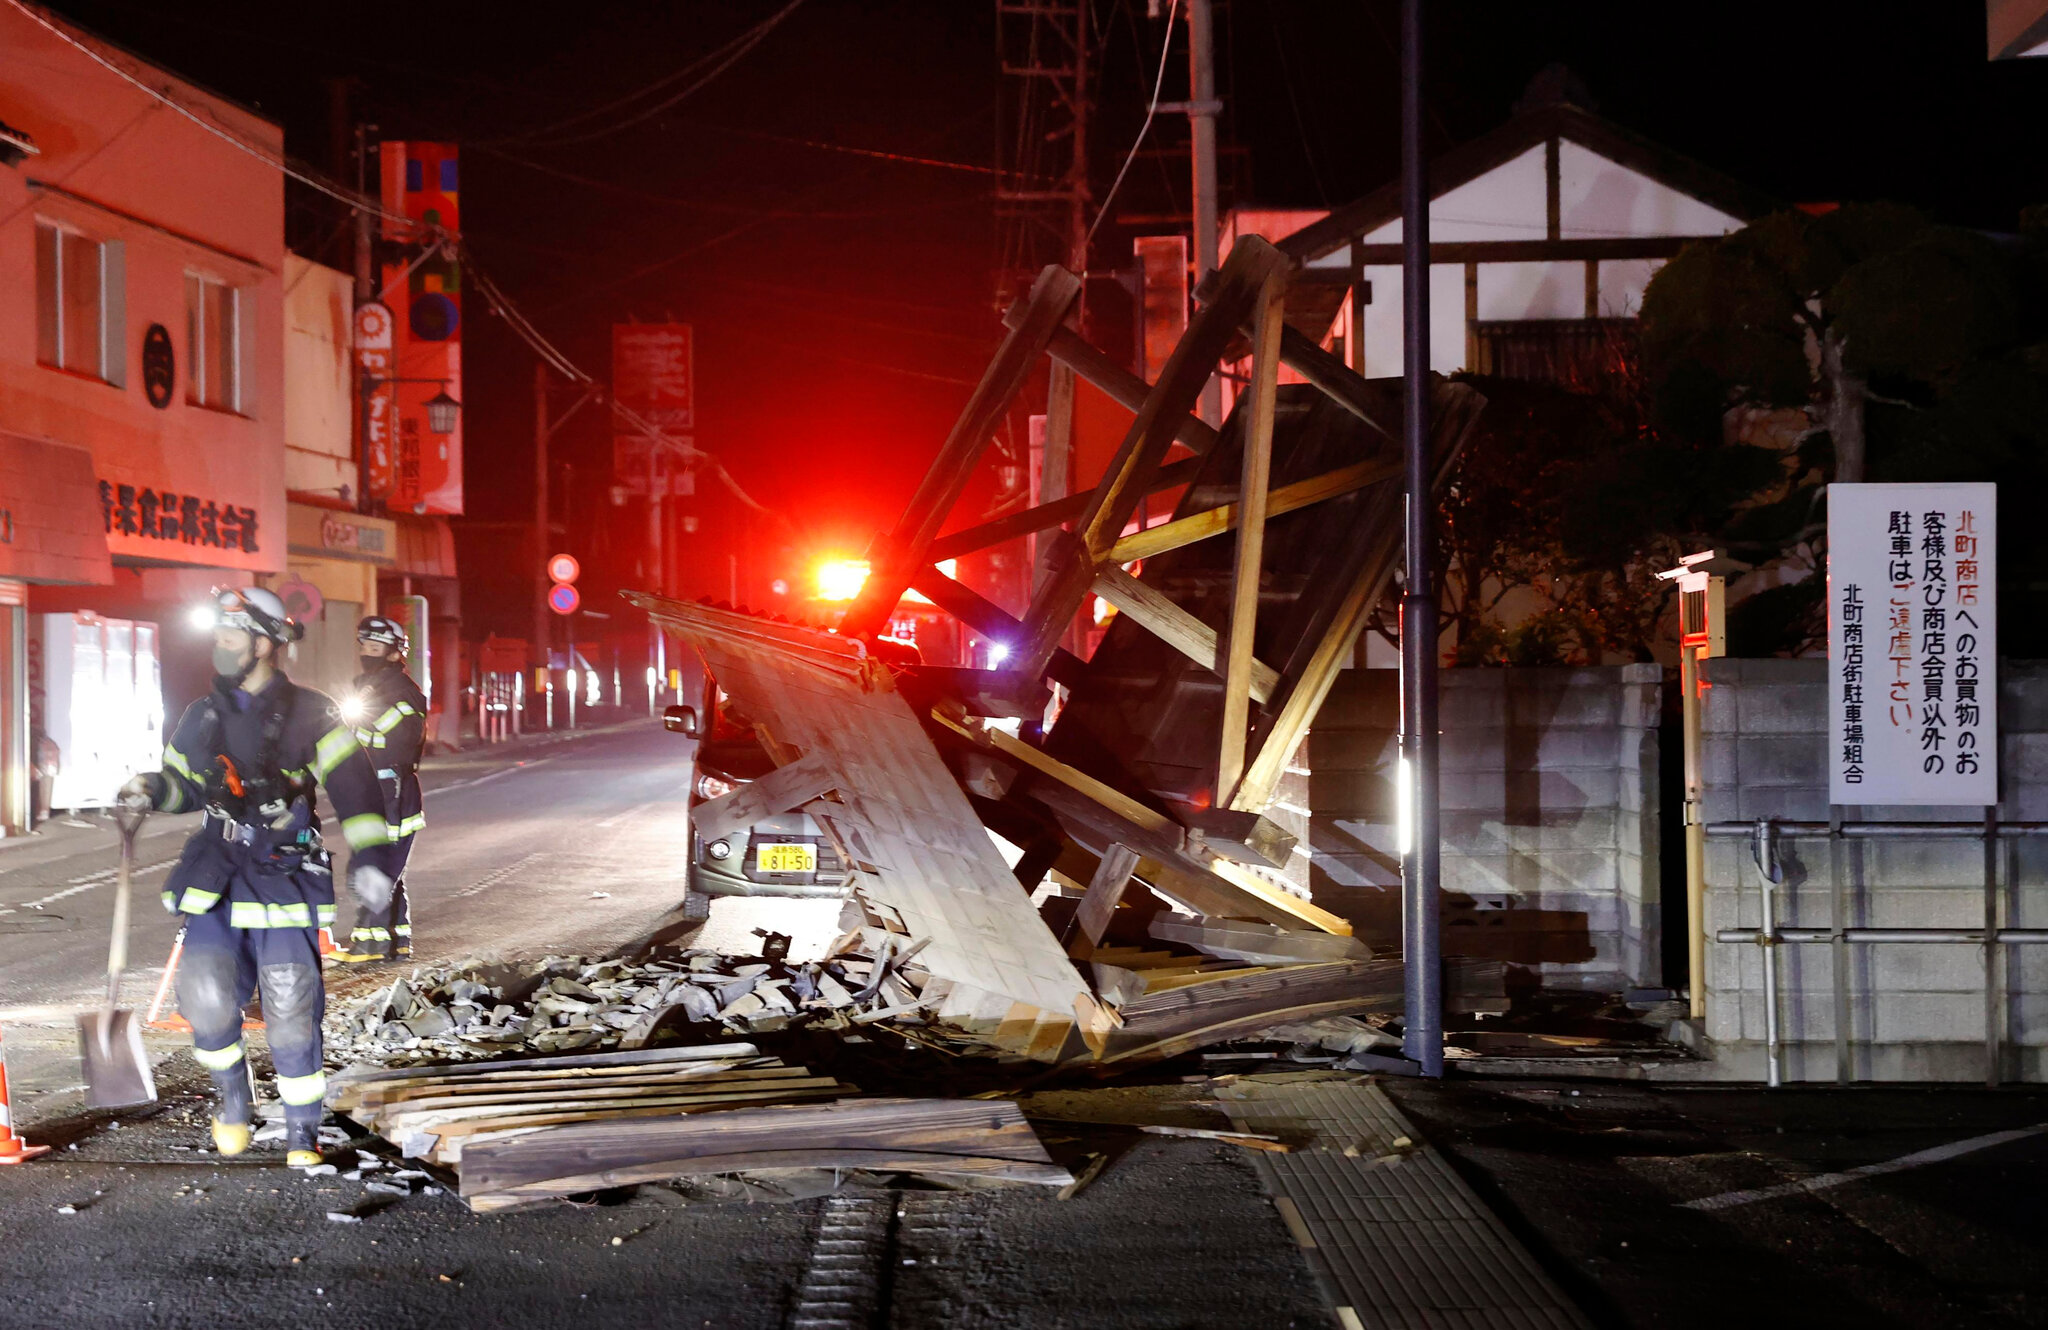 Persons Injured, Buildings Damaged In Japan Earthquake